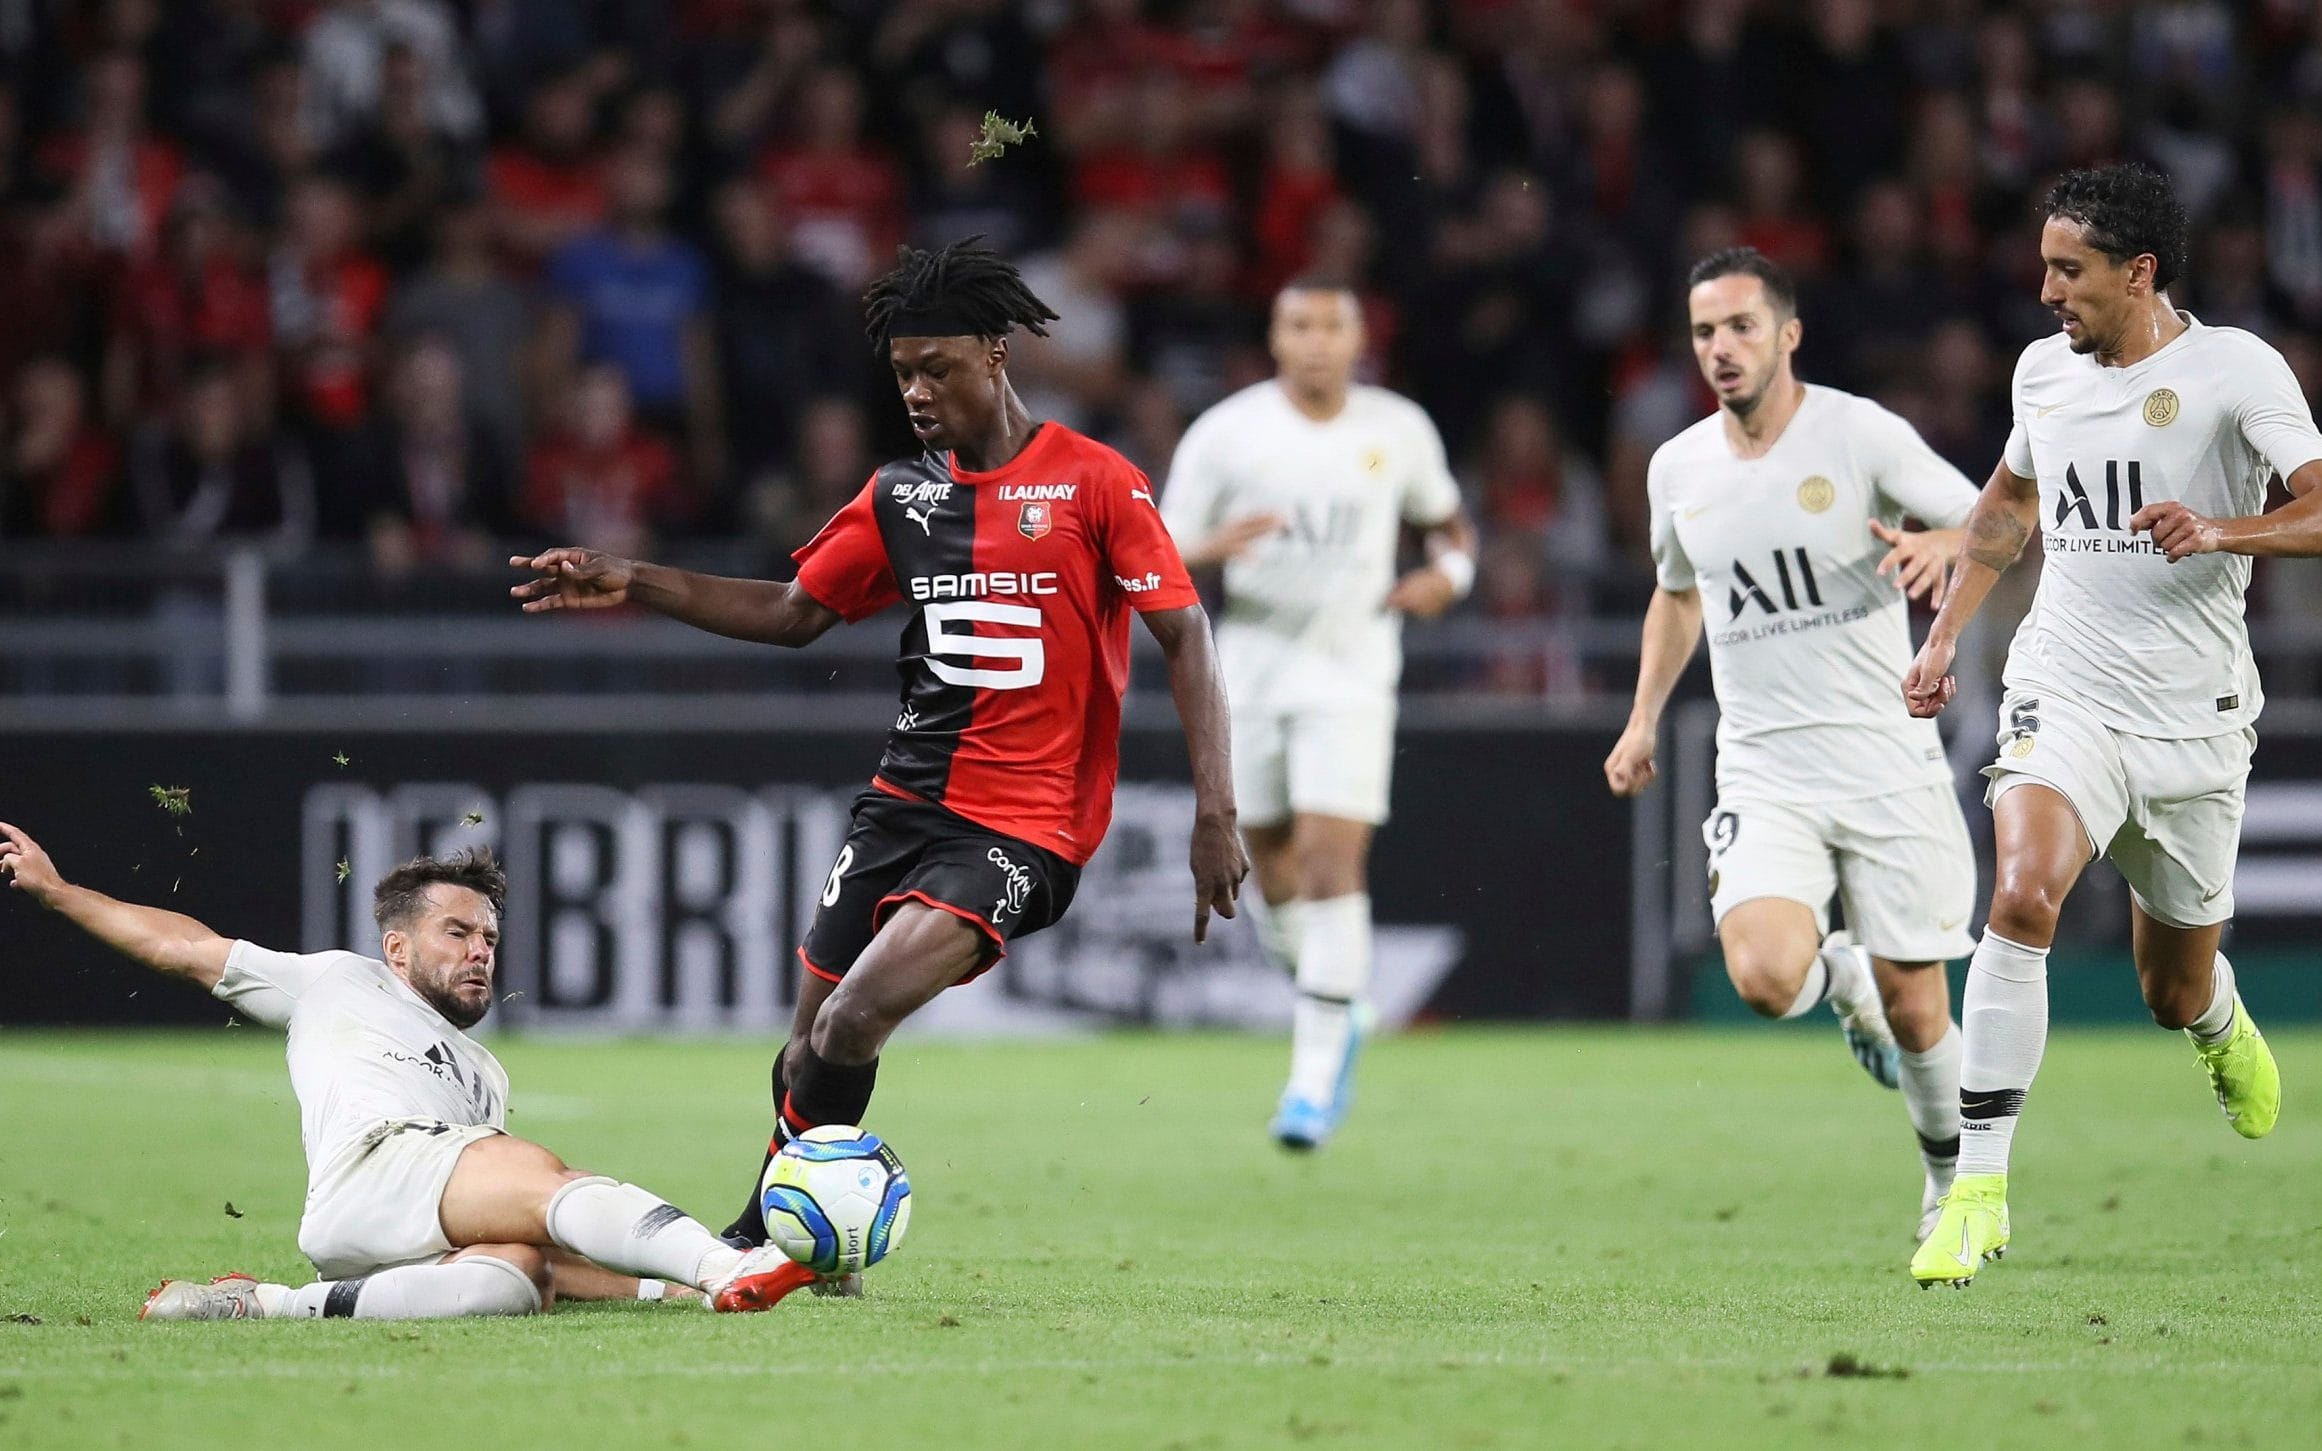 Camavinga is keen to extend his stay at Rennes